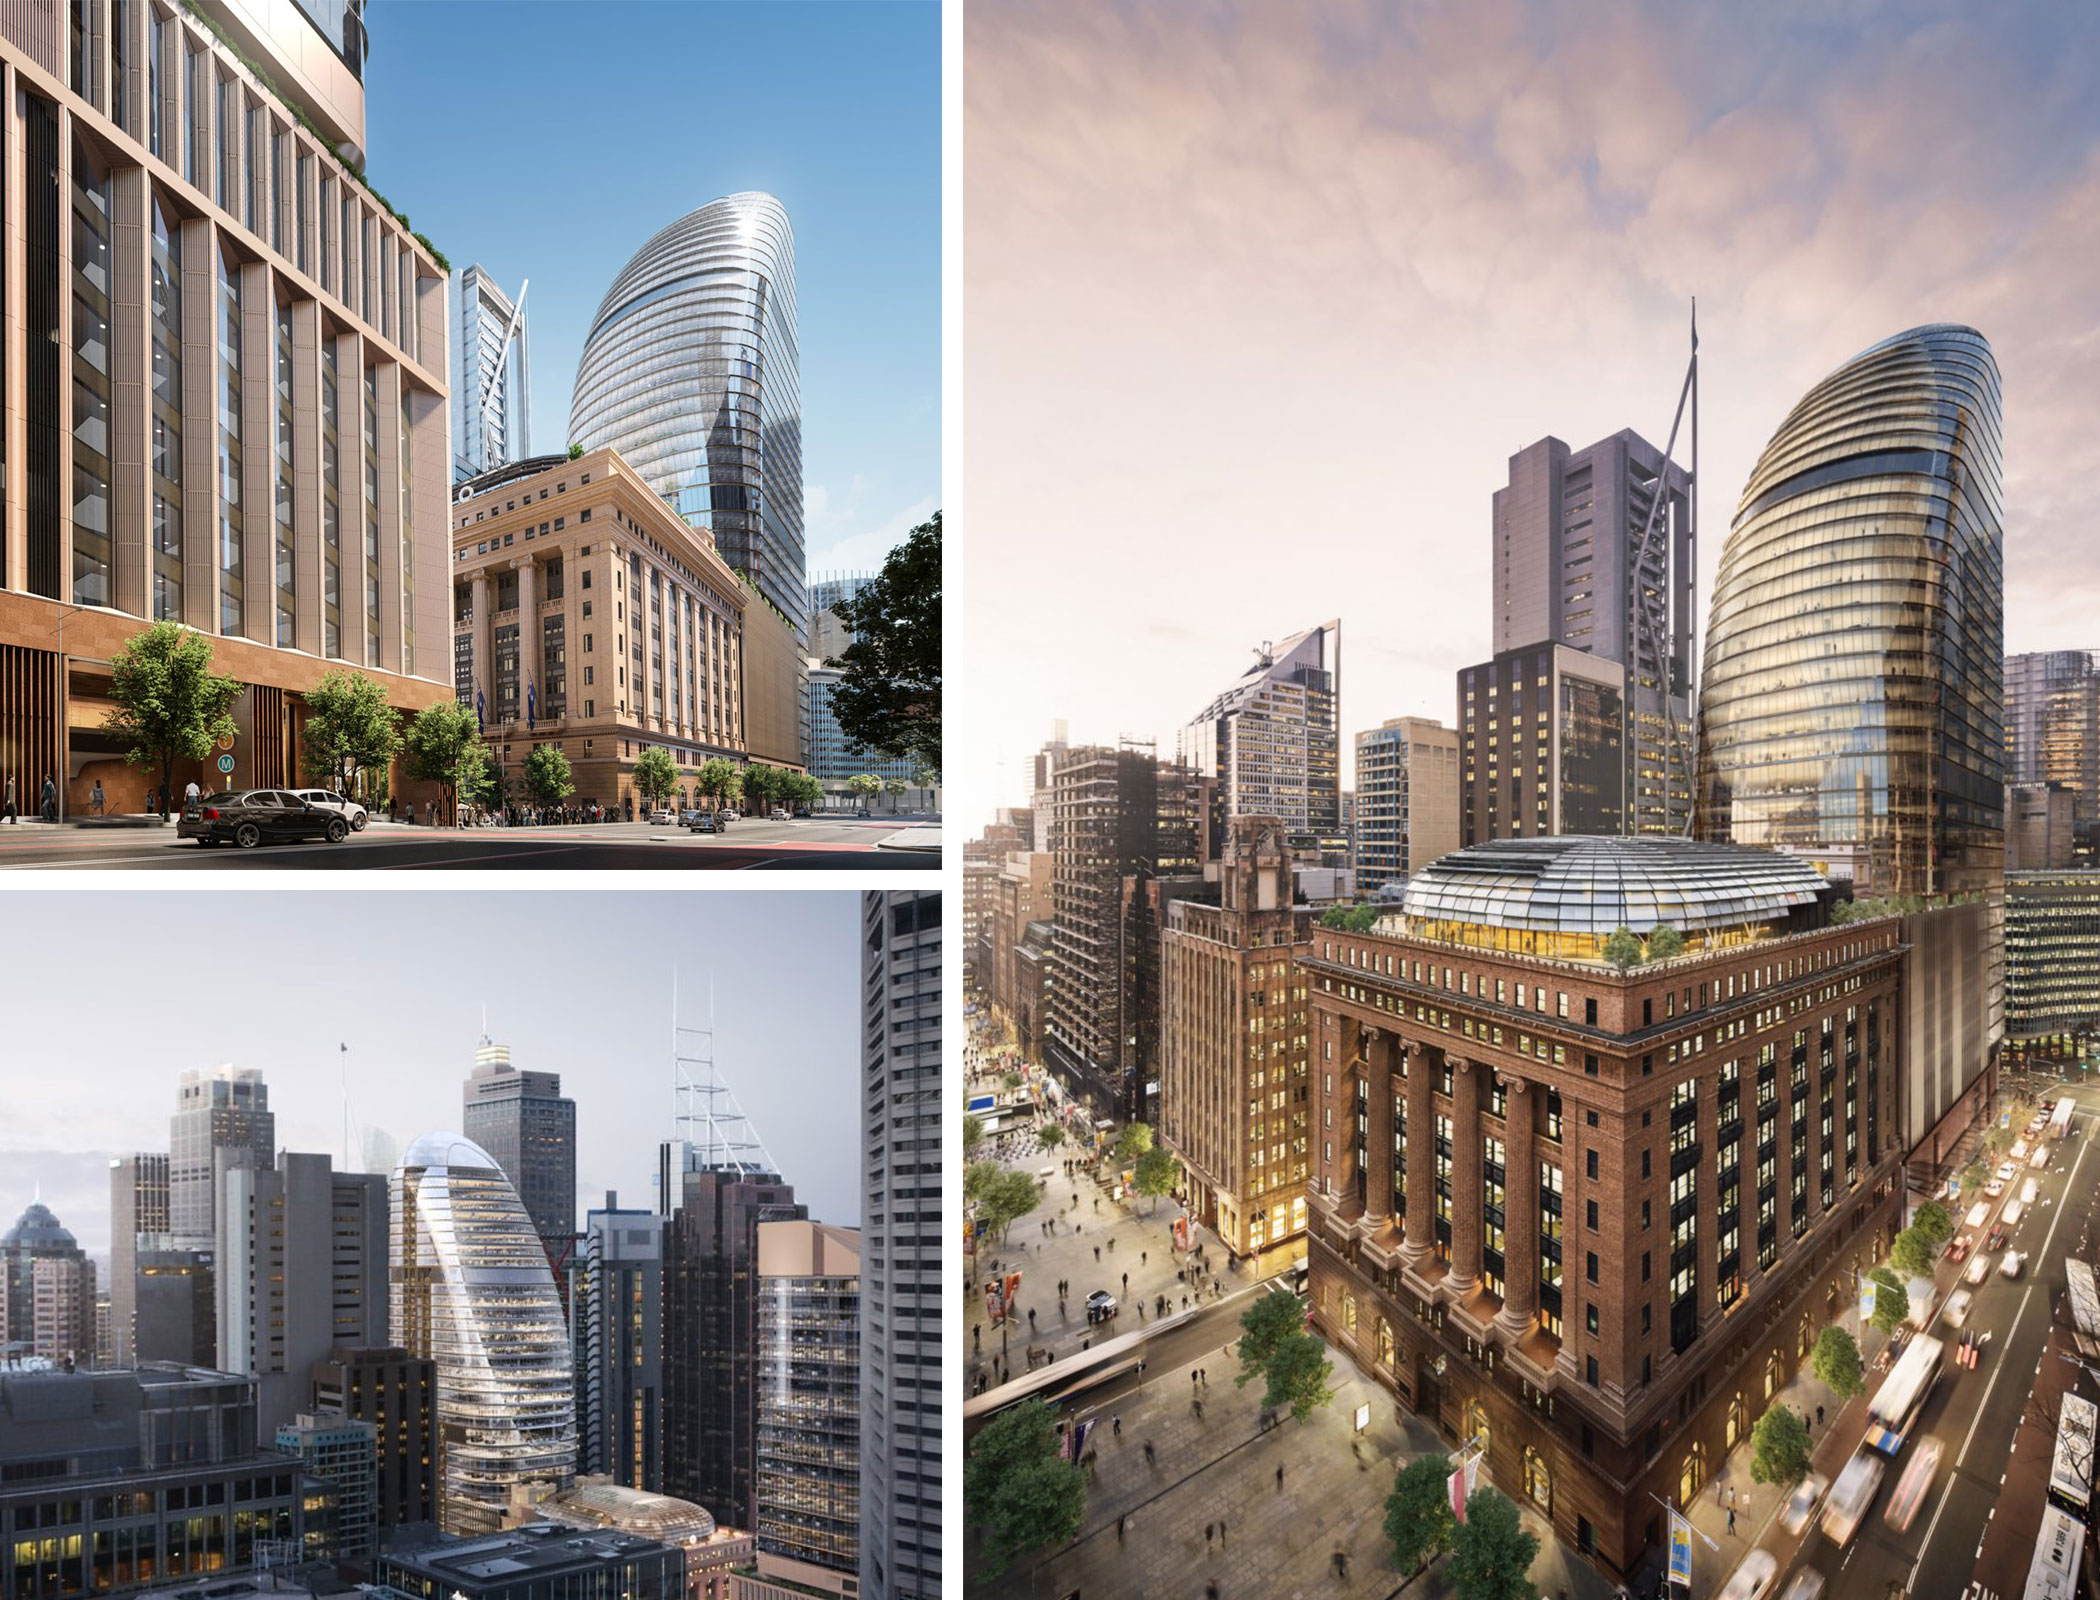 Macquarie will restore the historic 50 Martin Place building, which will be integrated into the precinct.